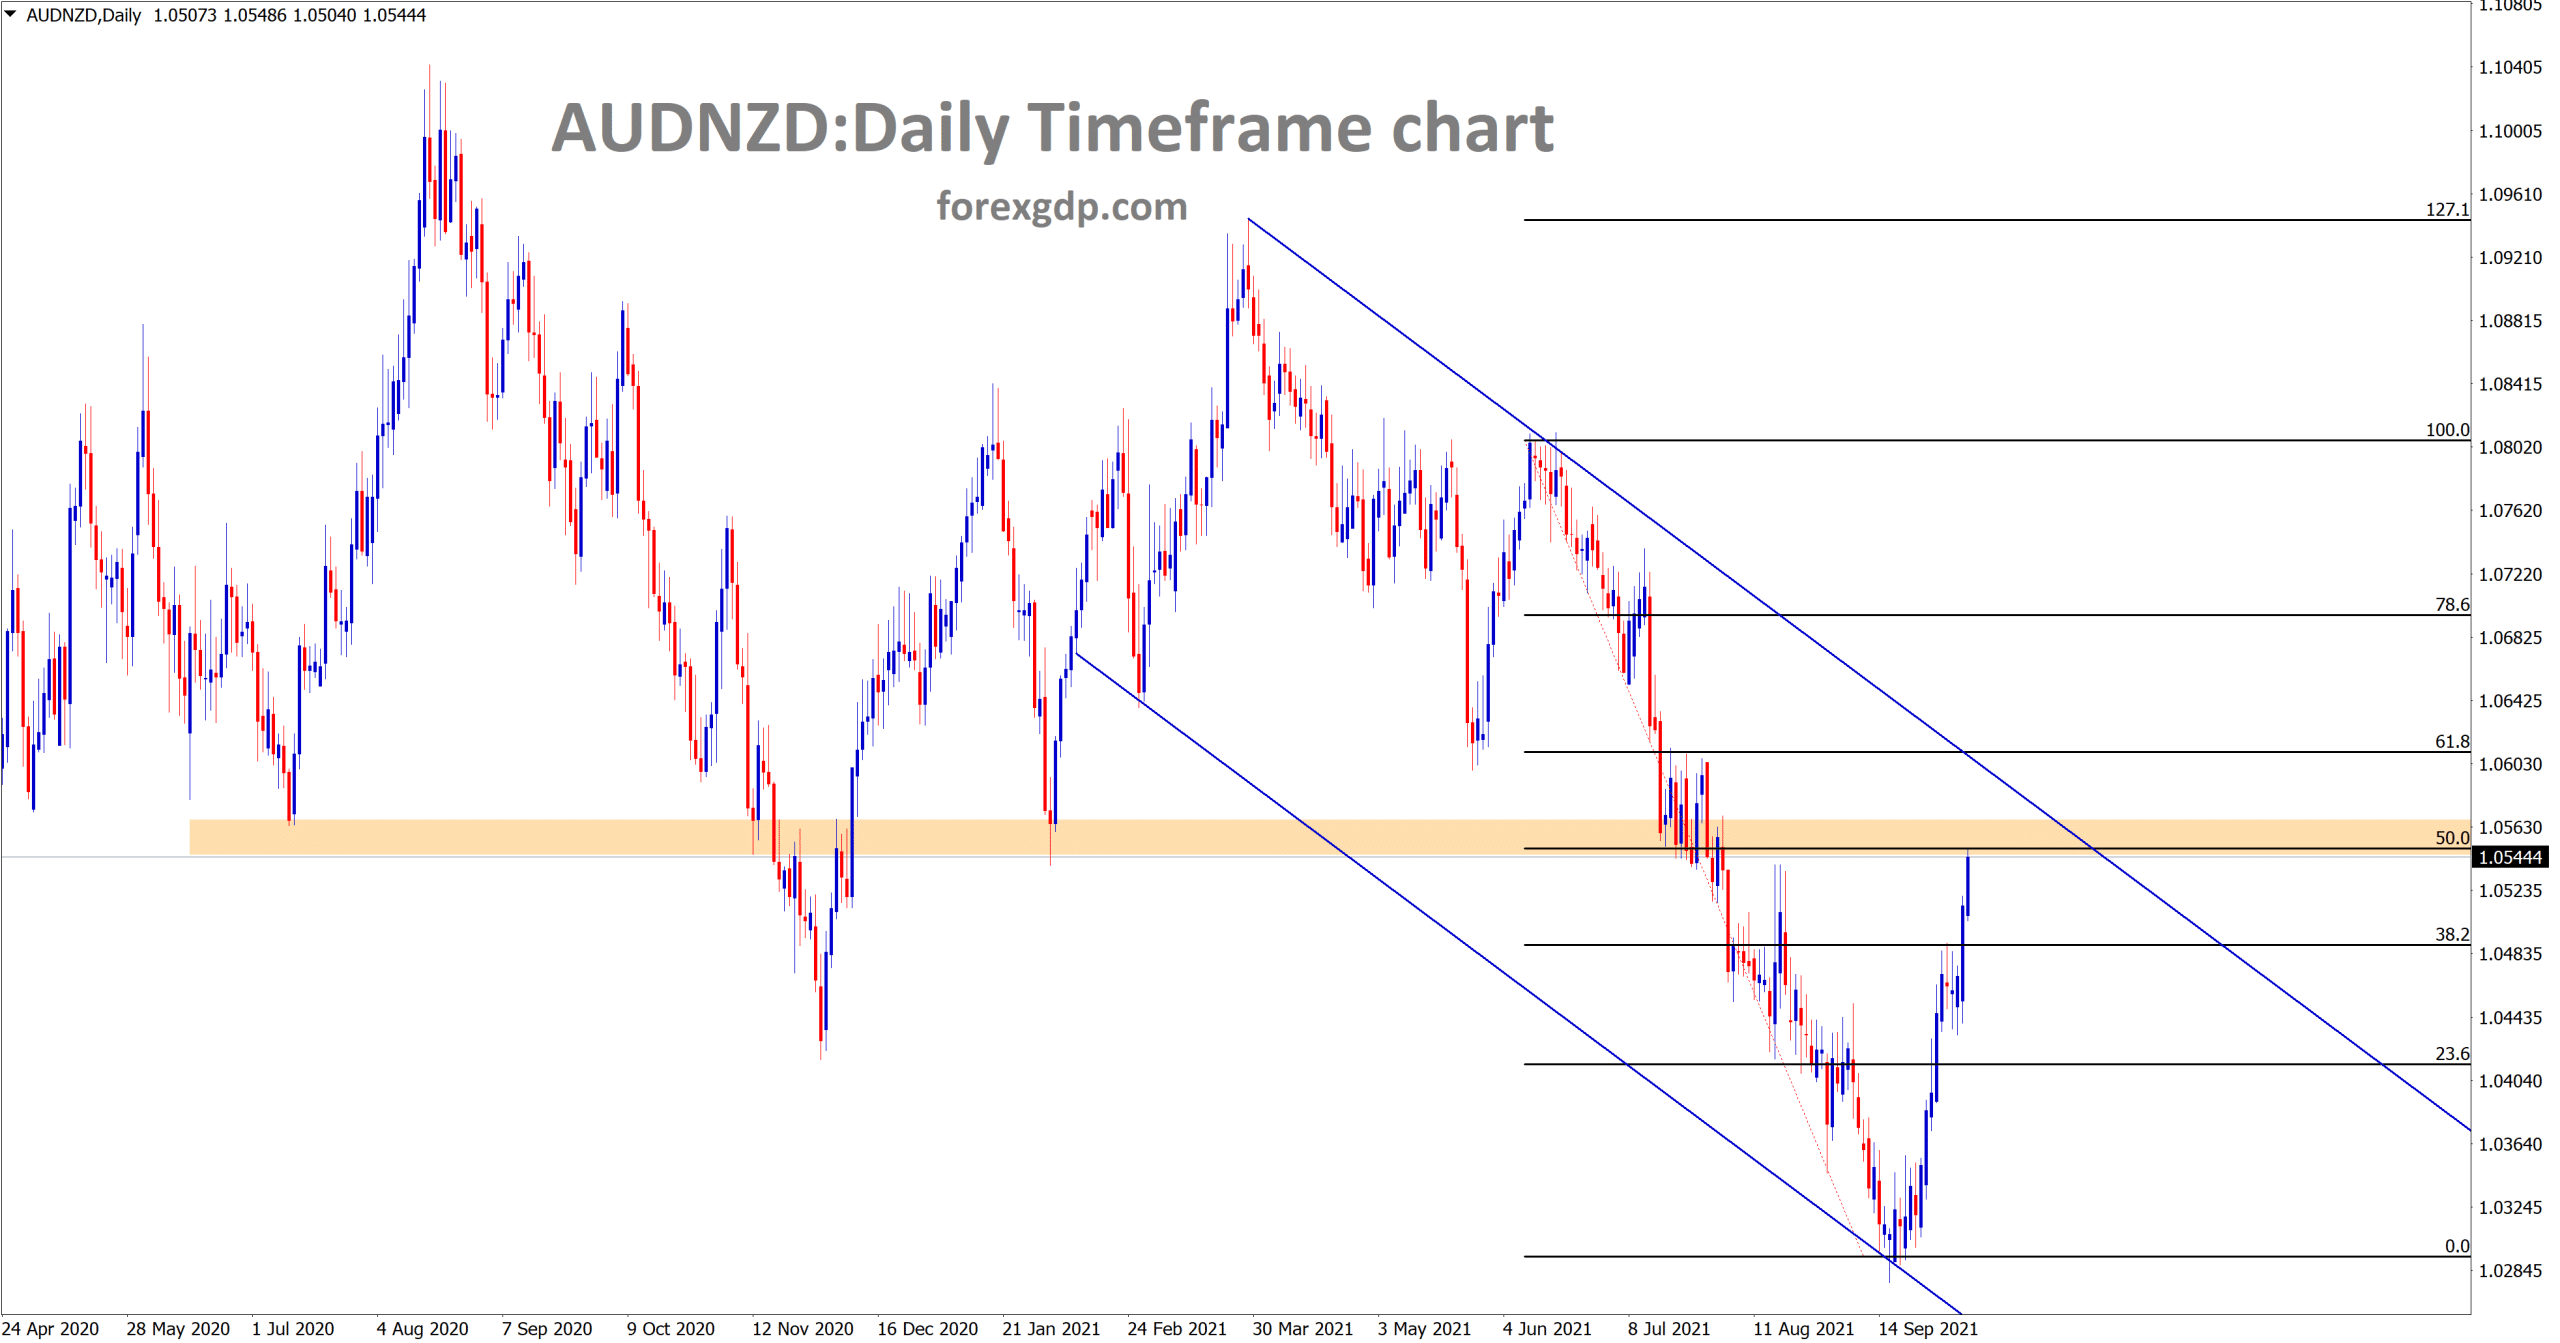 AUDNZD is going to reach the lower high area of the downtrend line